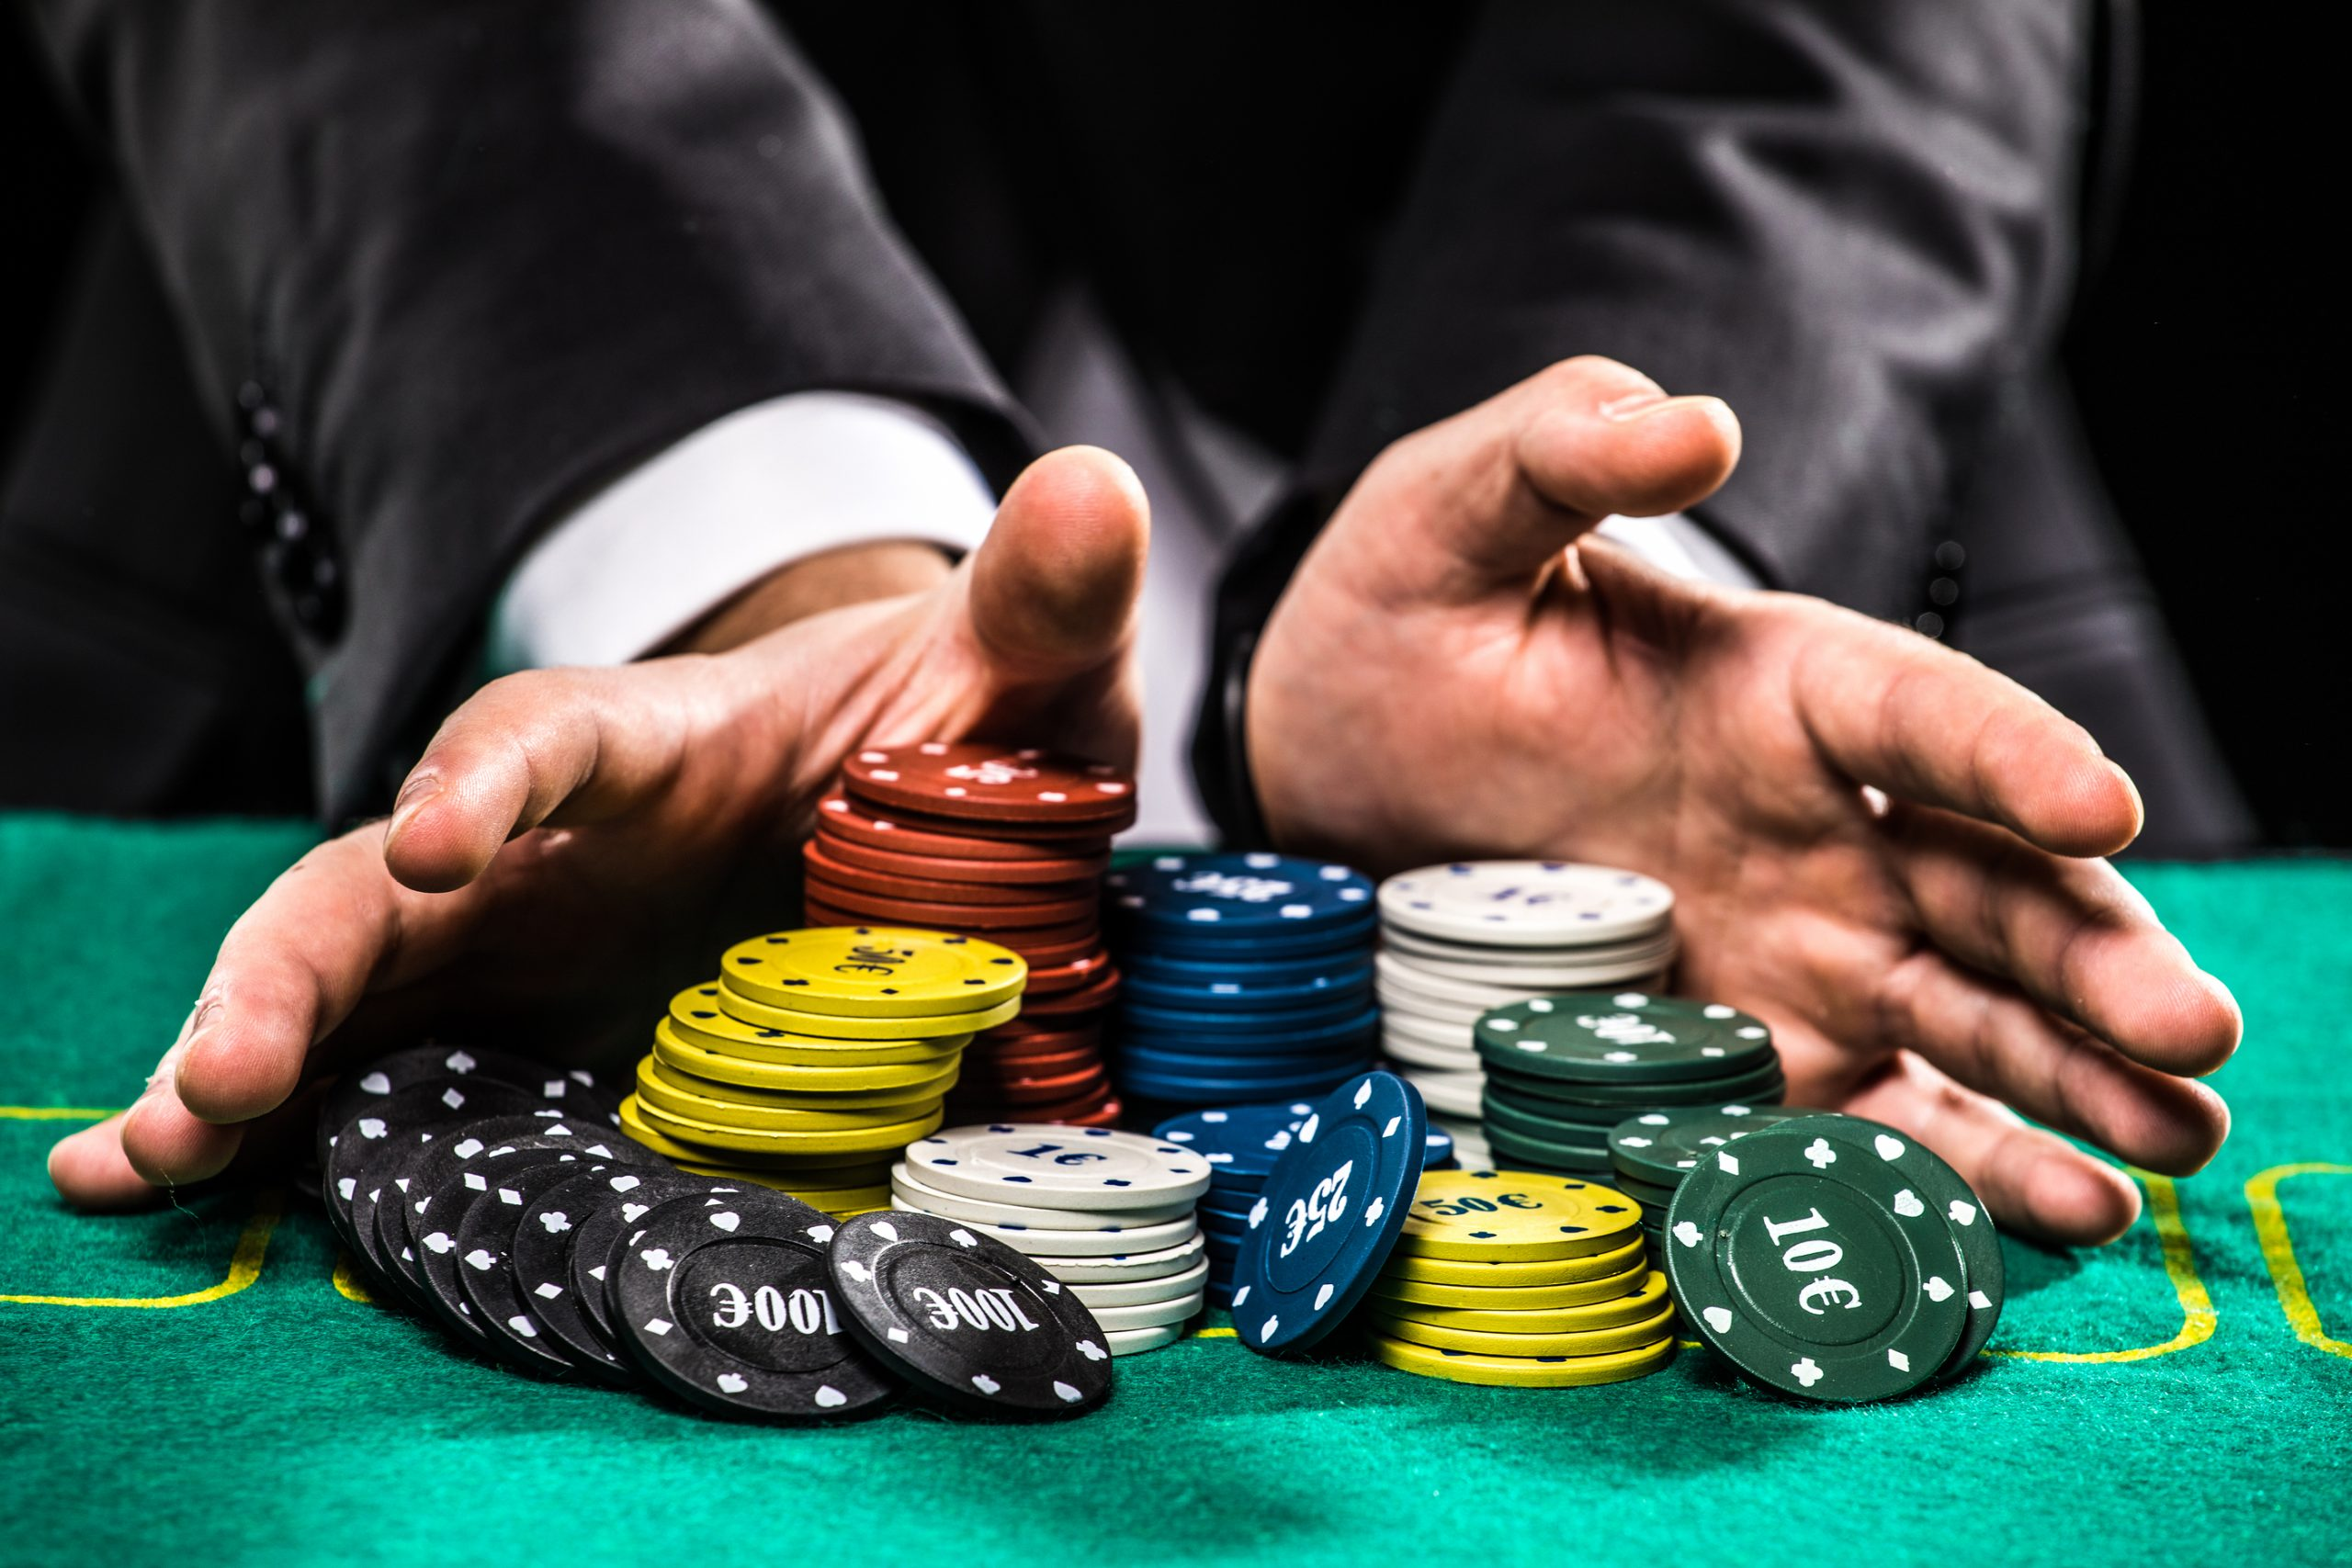 The skills needed to play online poker